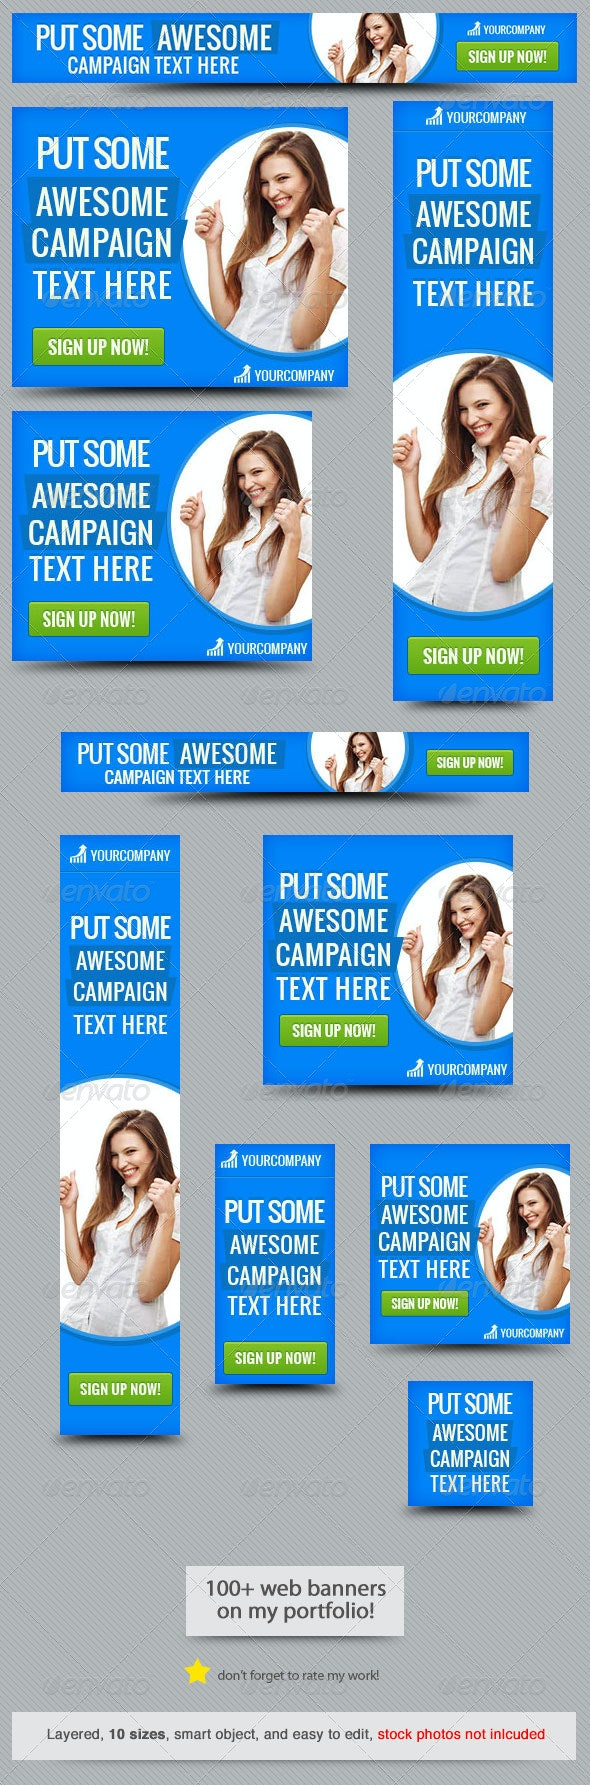 Corporate Web Banner Design Template 41 - Banners & Ads Web Elements